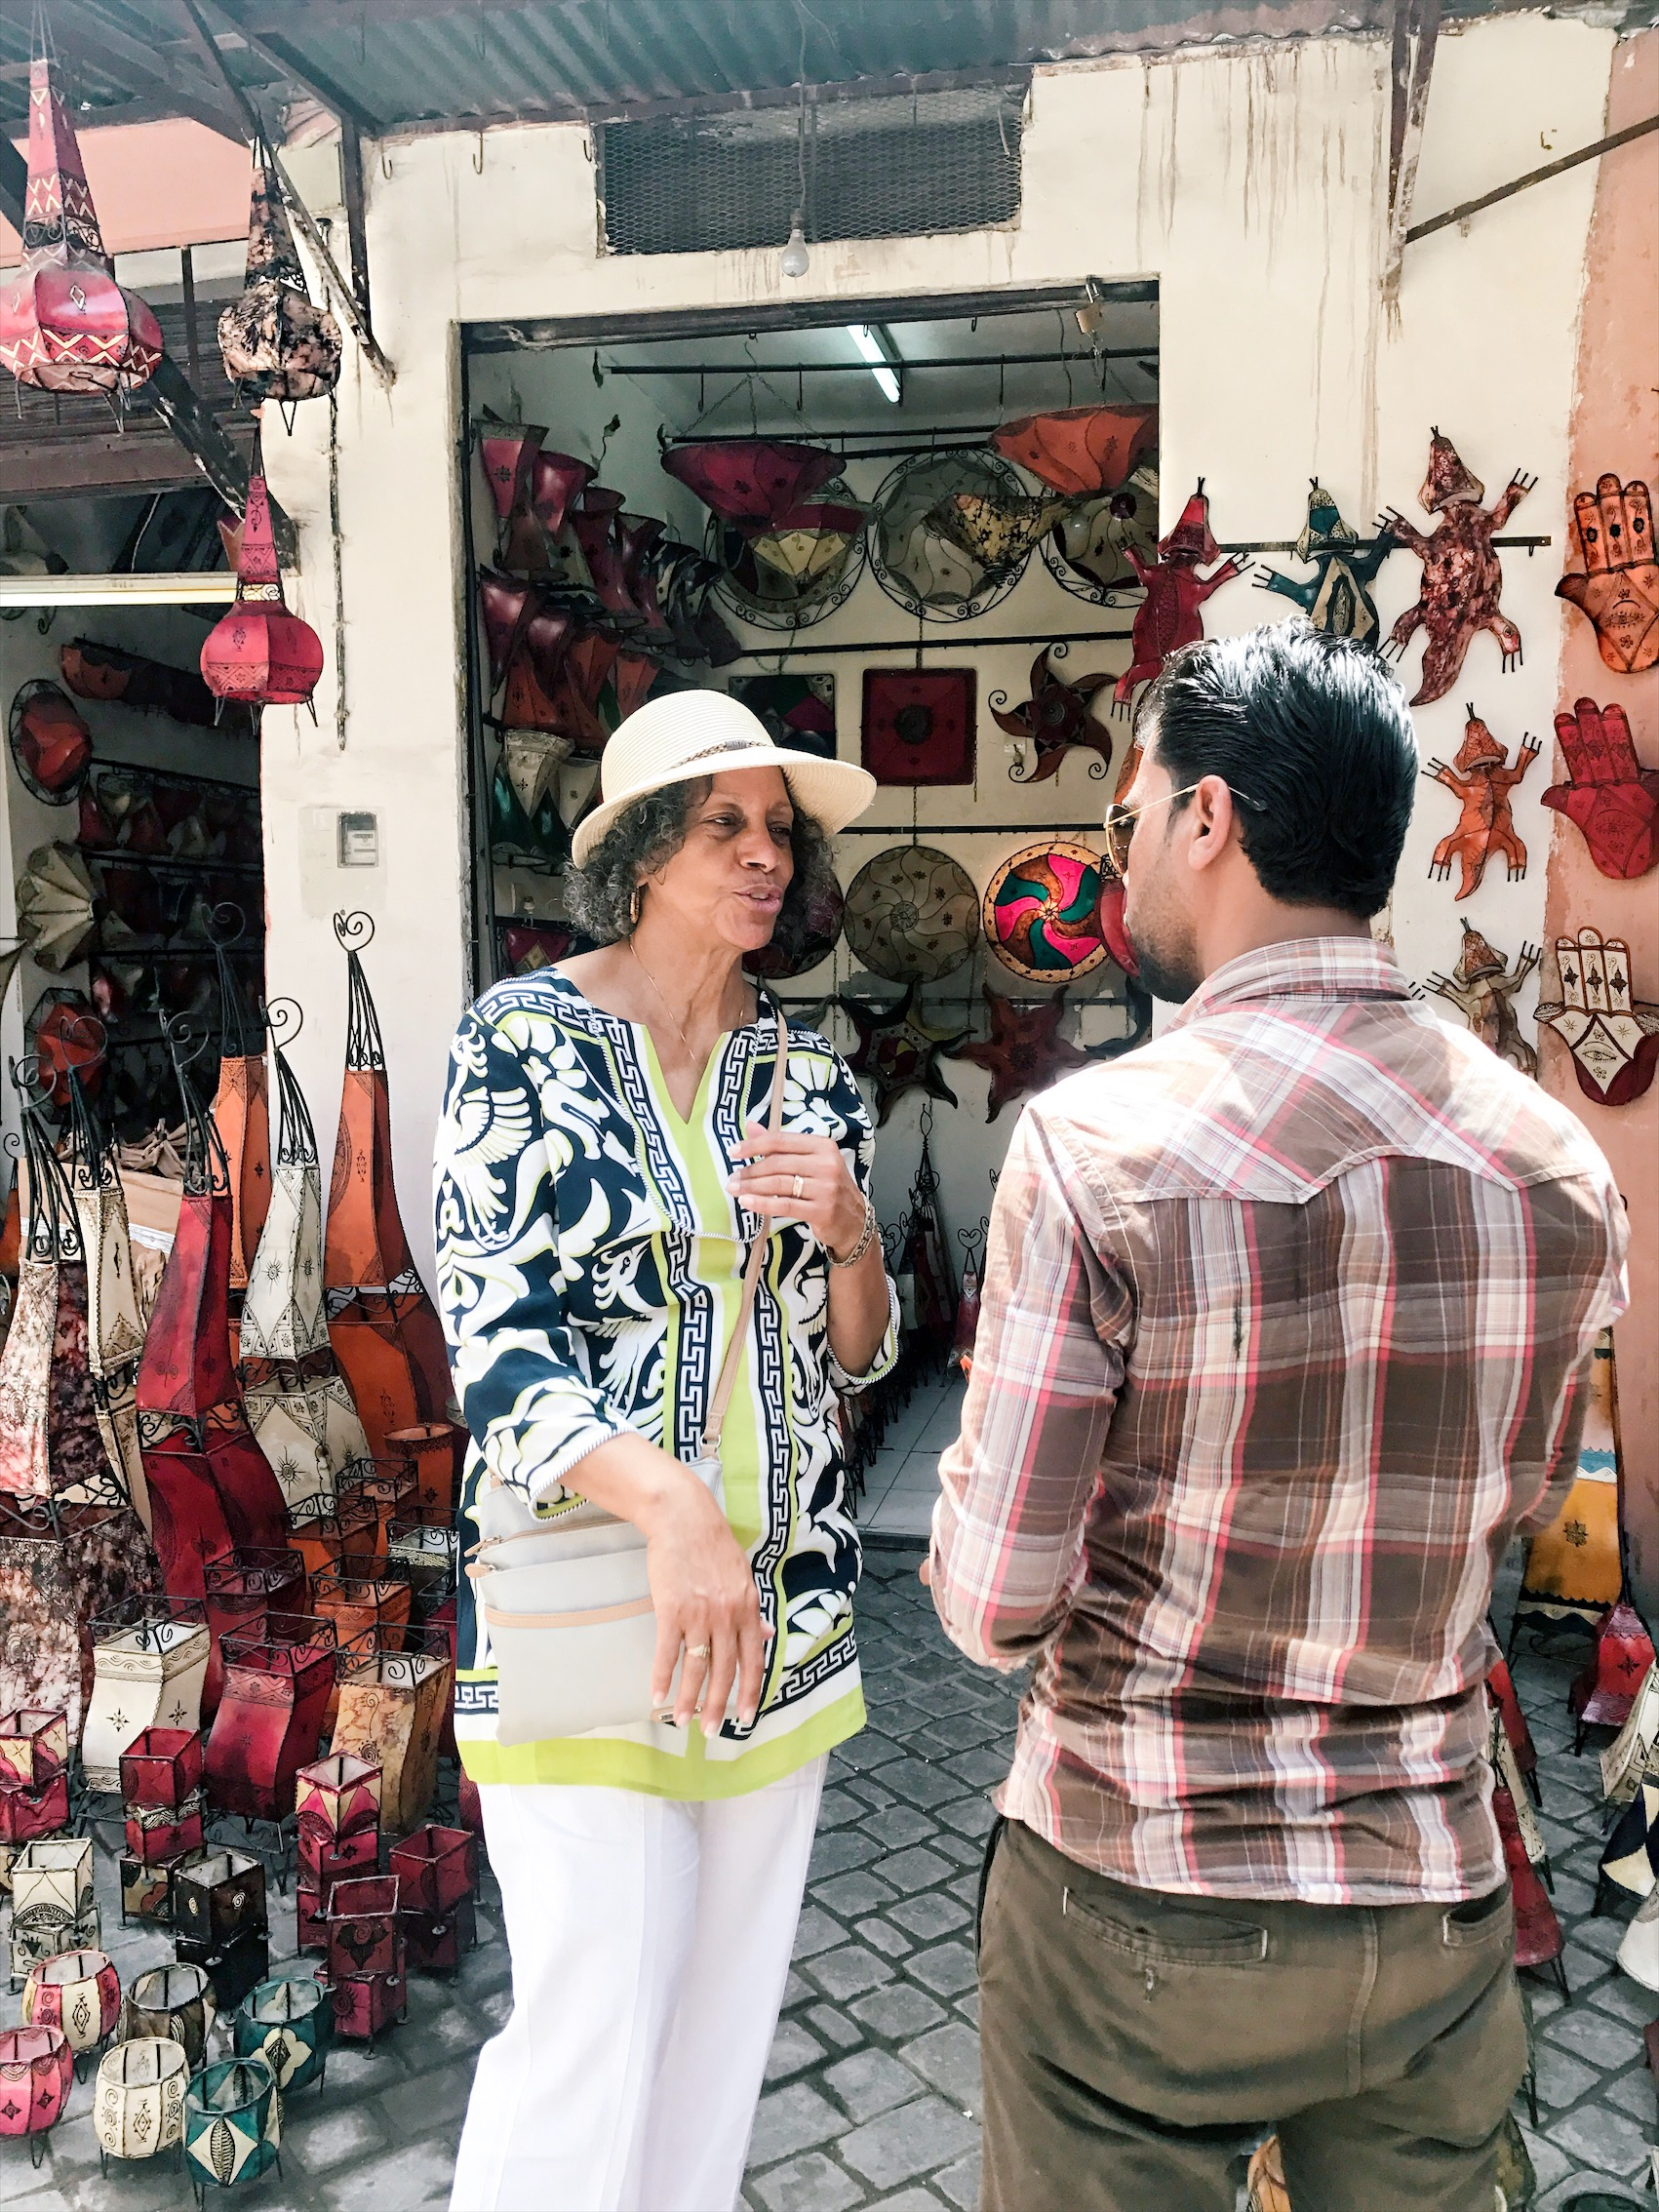 My Grandmother making friends in the Medina.